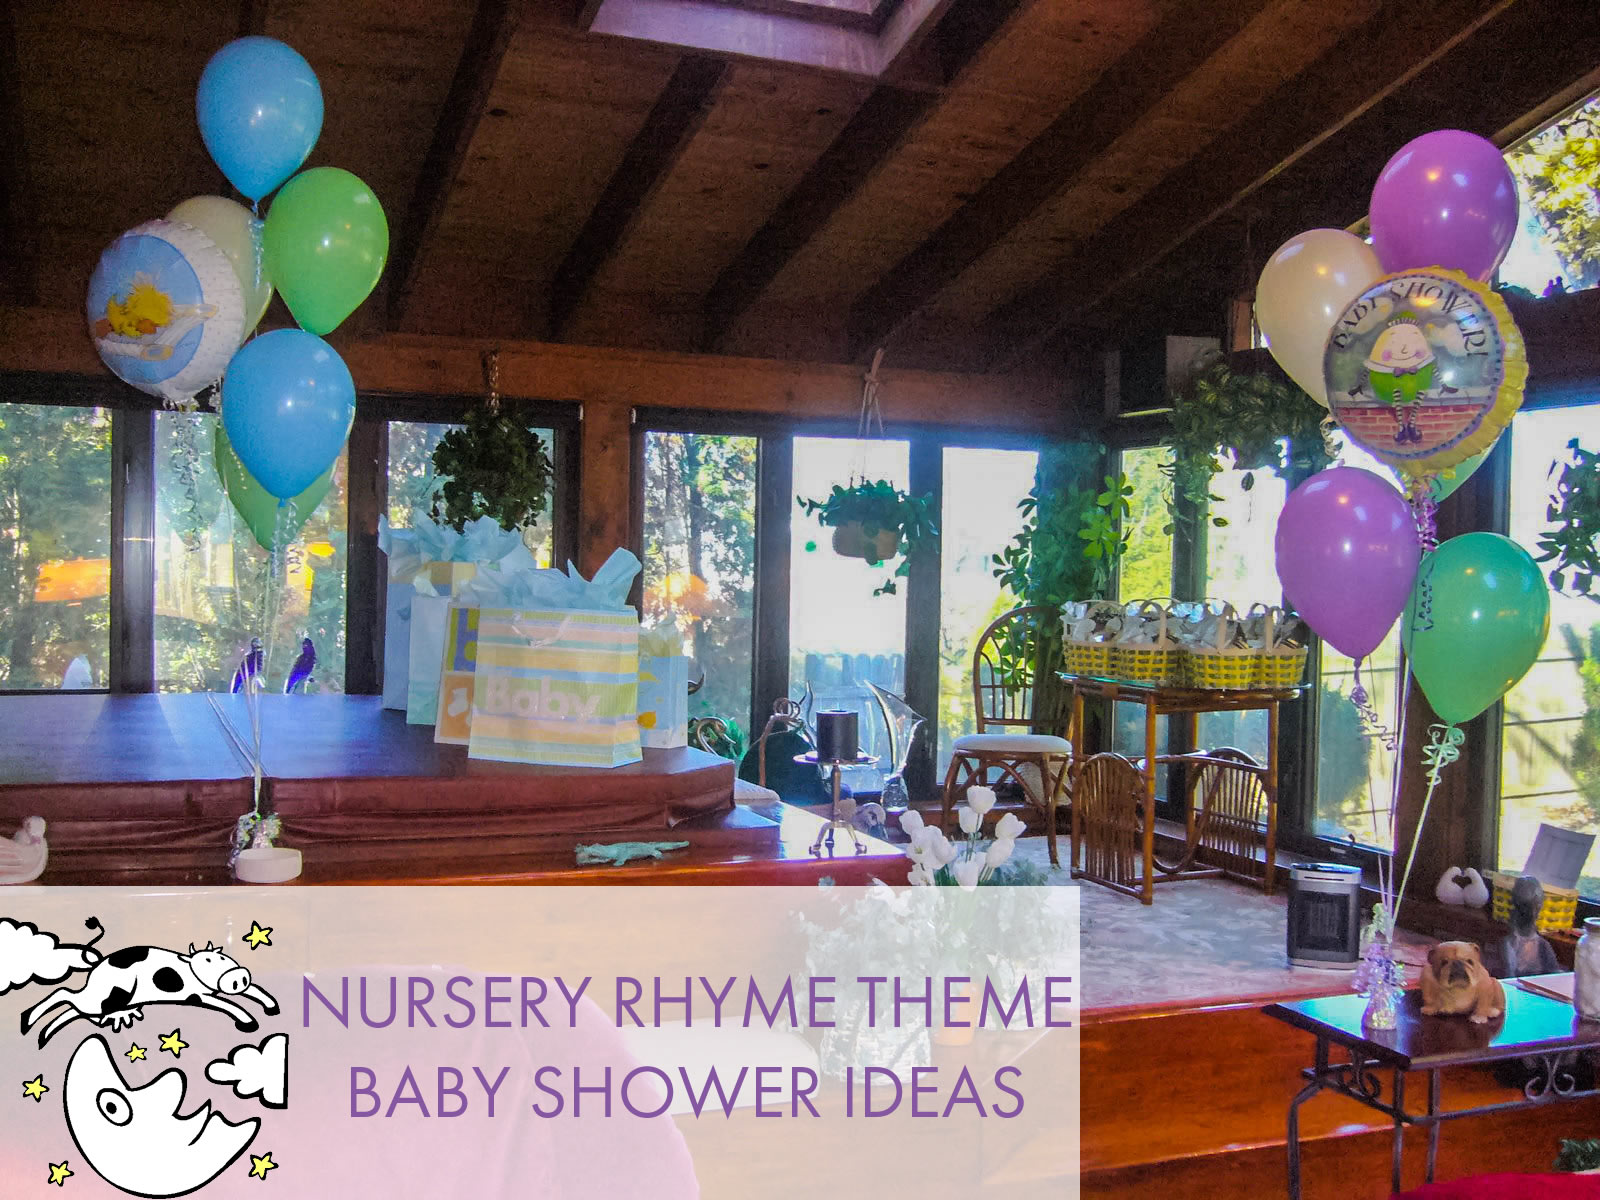 Nursery Rhyme Baby Shower